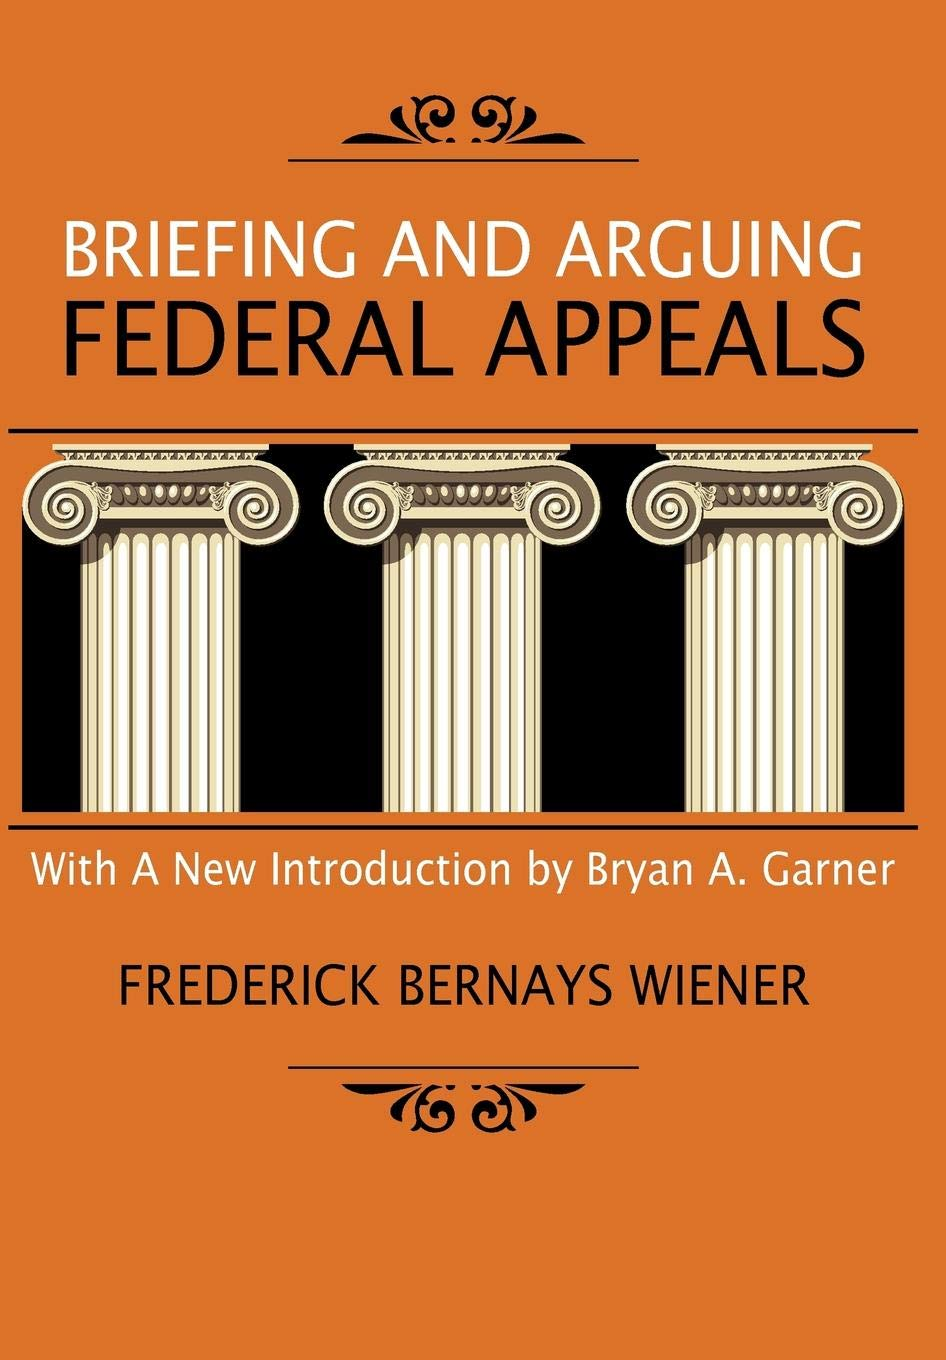 Image OfBriefing And Arguing Federal Appeals